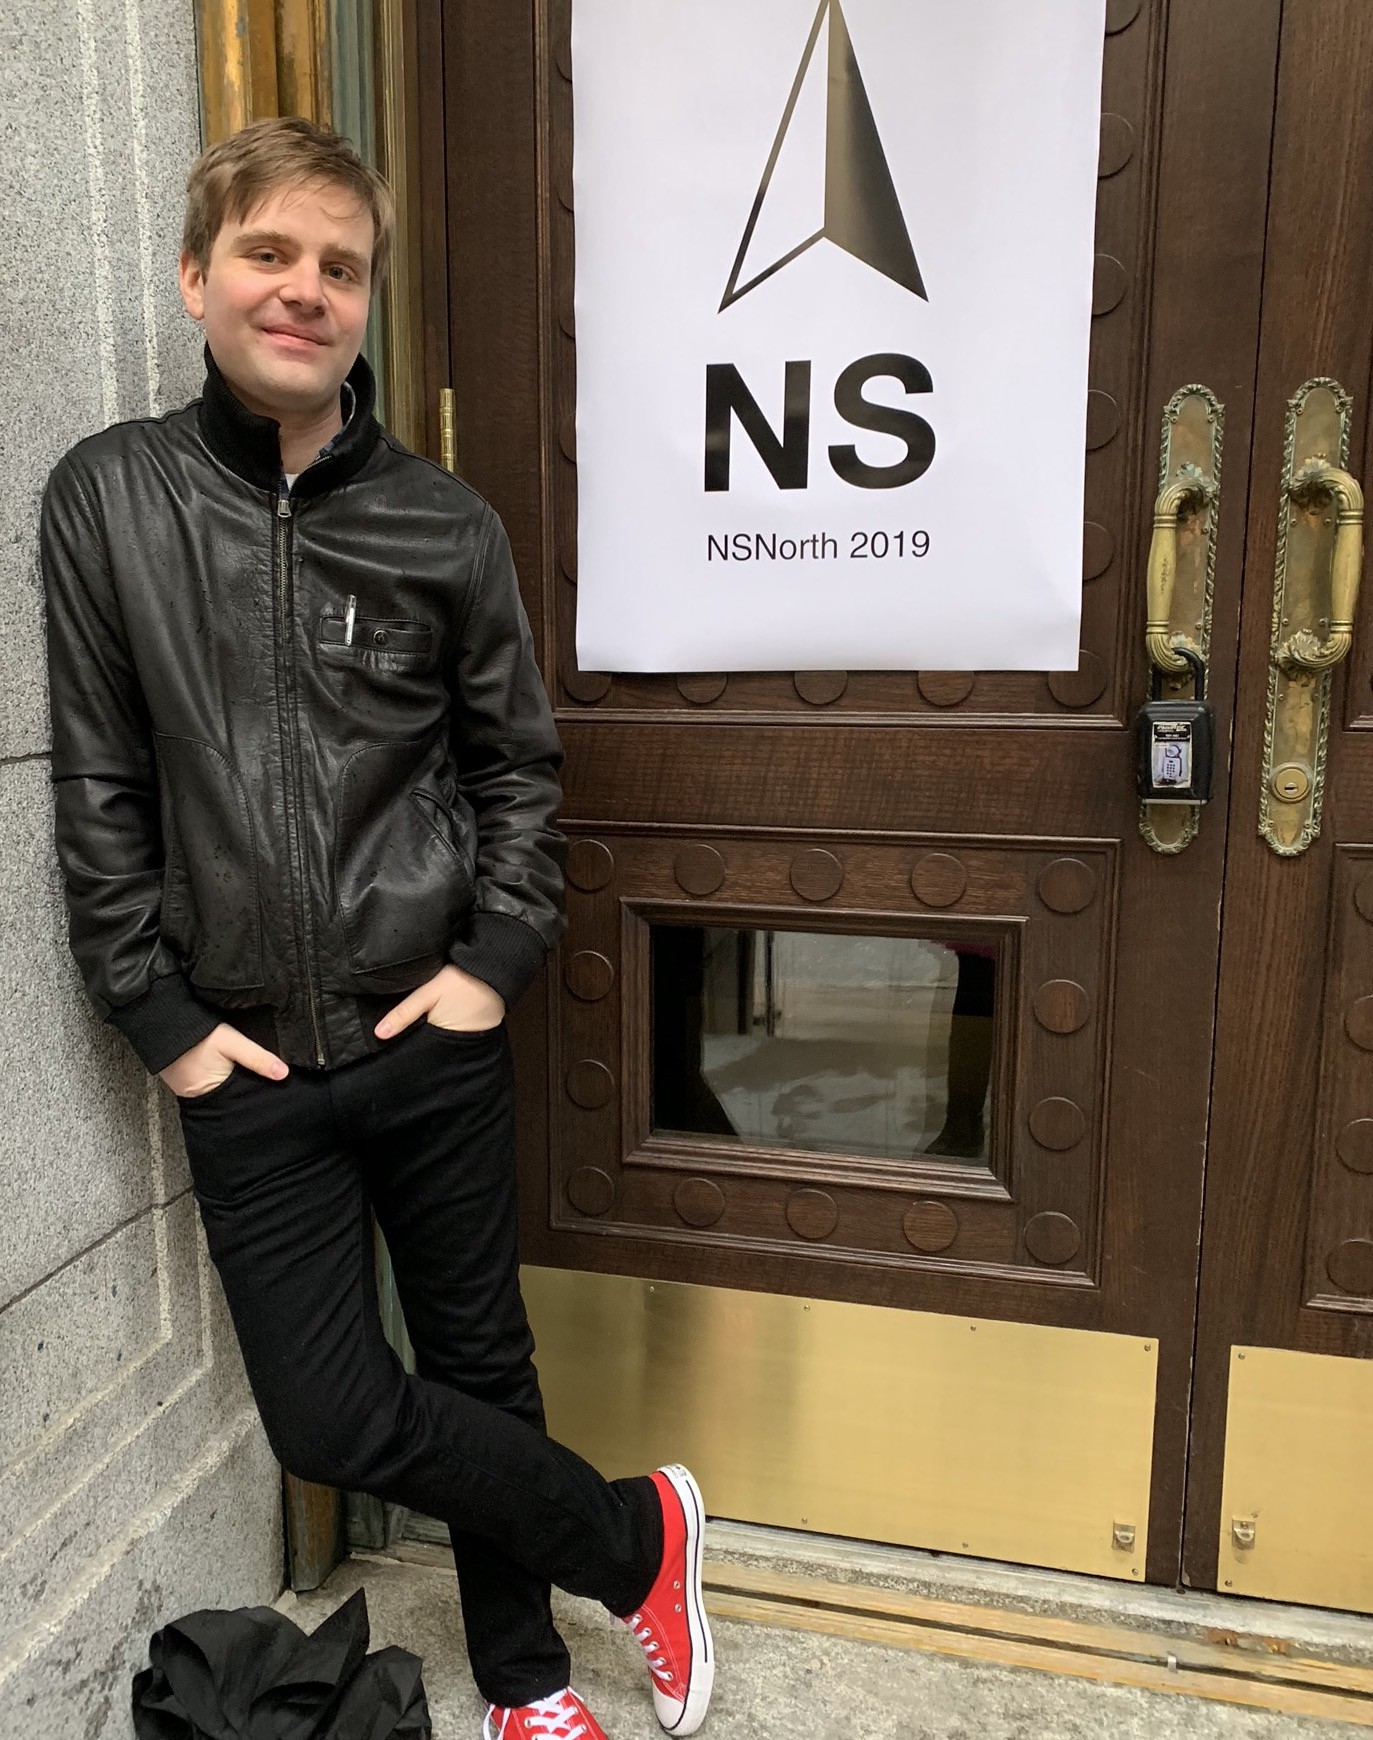 Matt outside the conference, in front of a sign that says NSNorth 2019.